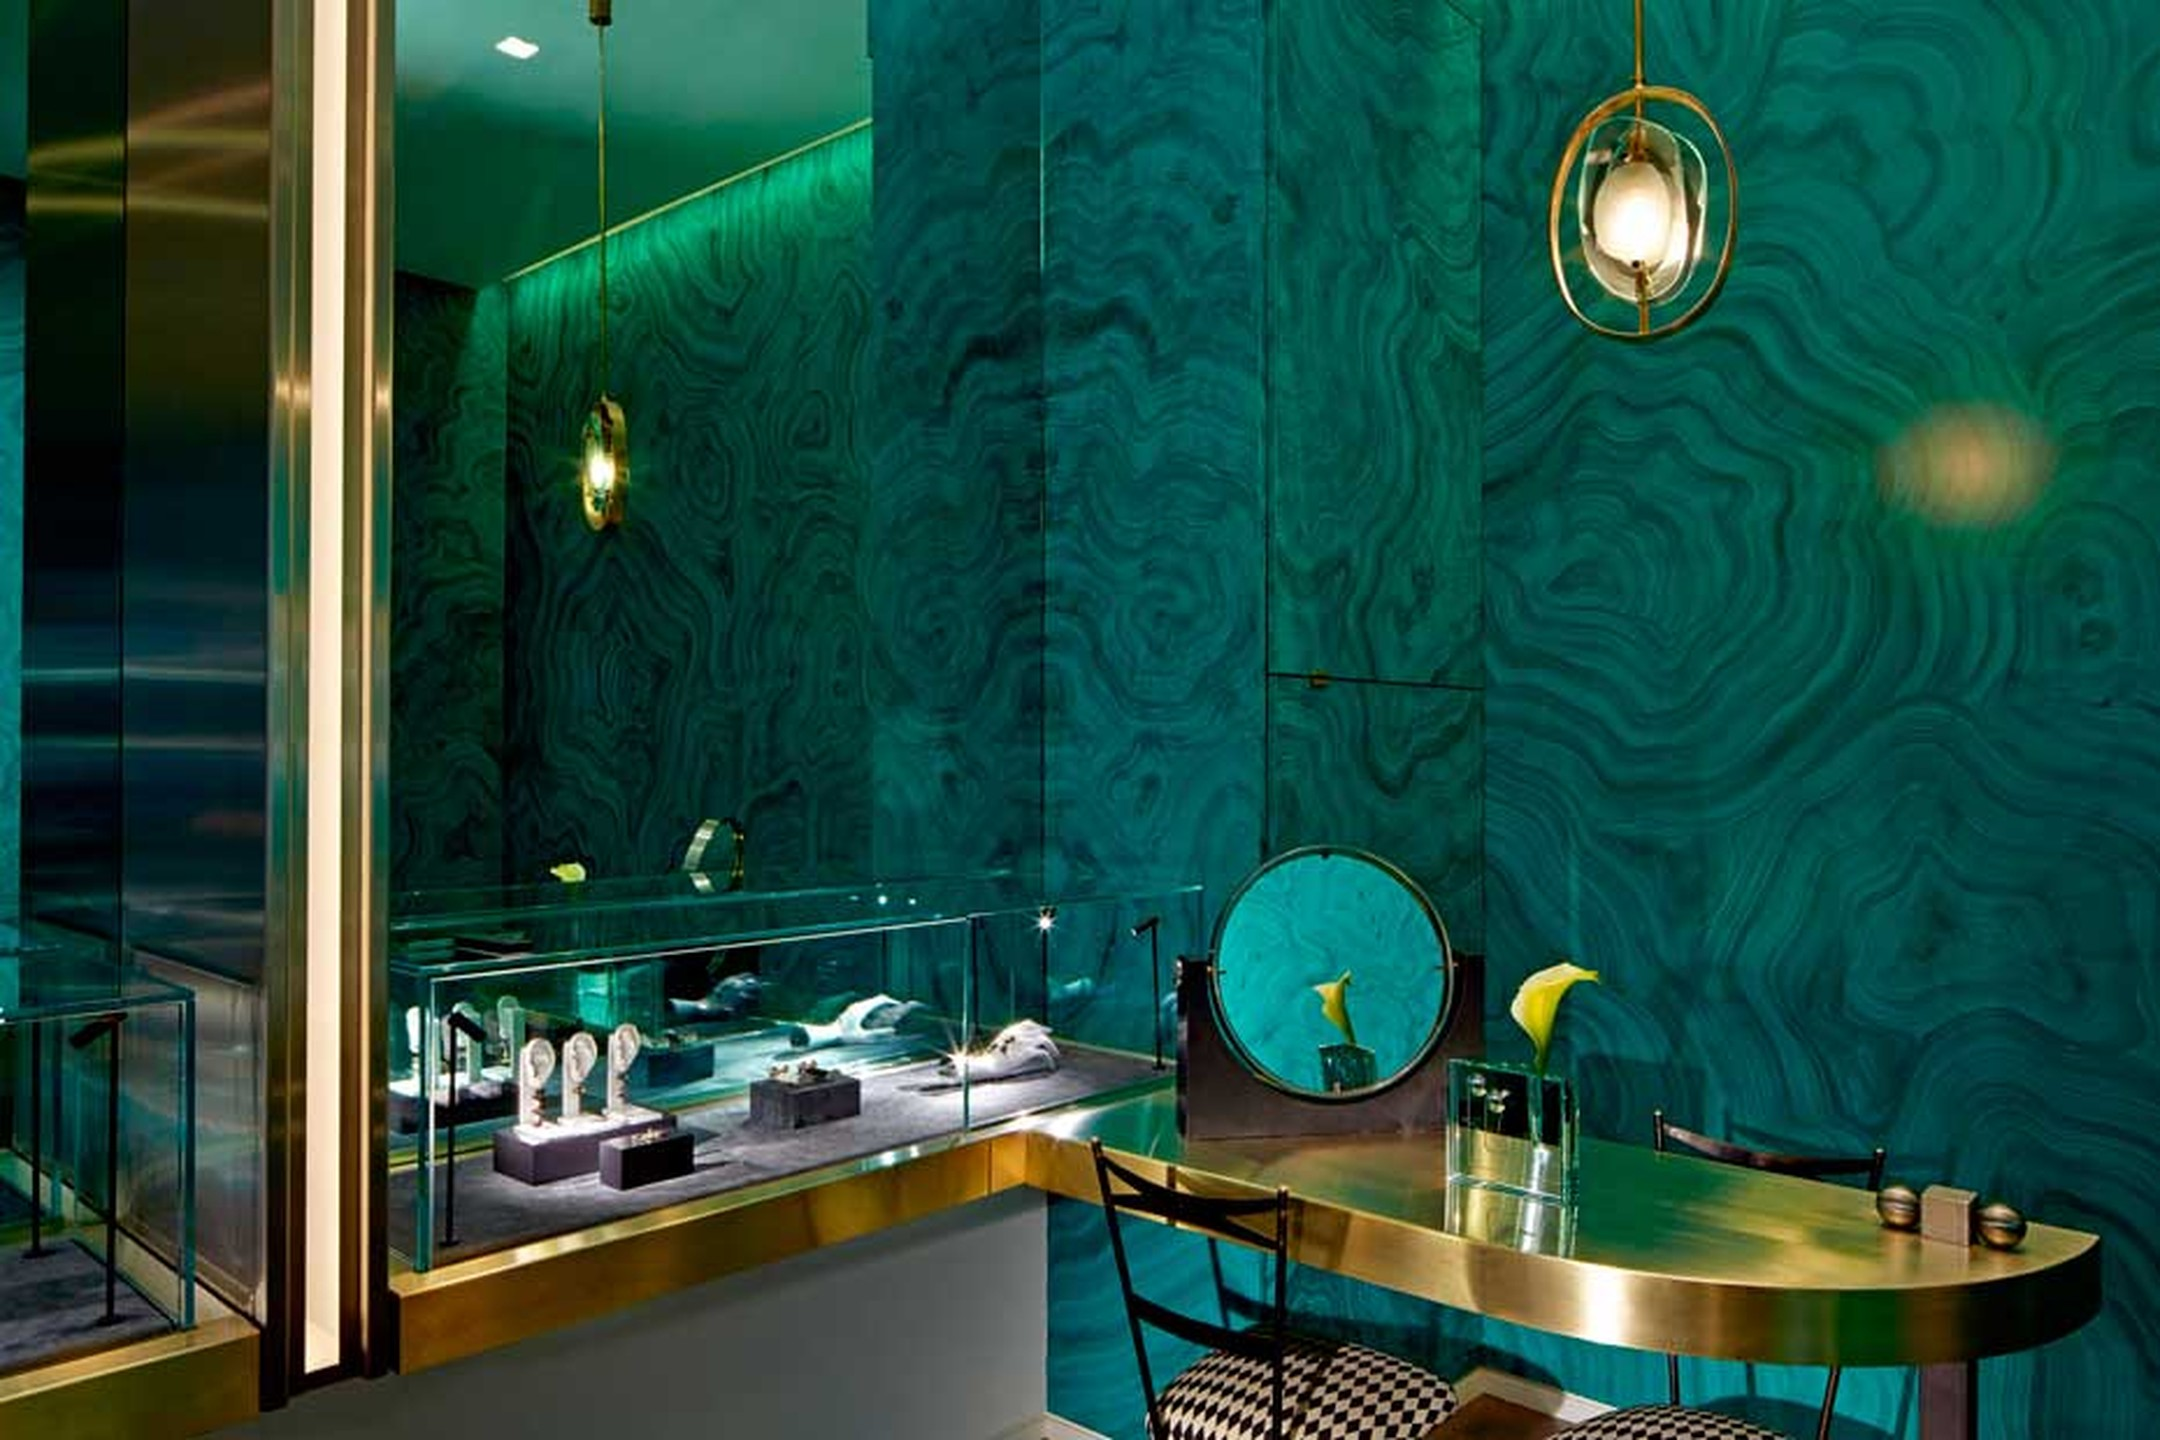 The walls of the boutique are lined in green mirrors, and elsewhere there is a mix of materials and textures including polished stainless steel, satin brass, fur and malachite green faux leather.